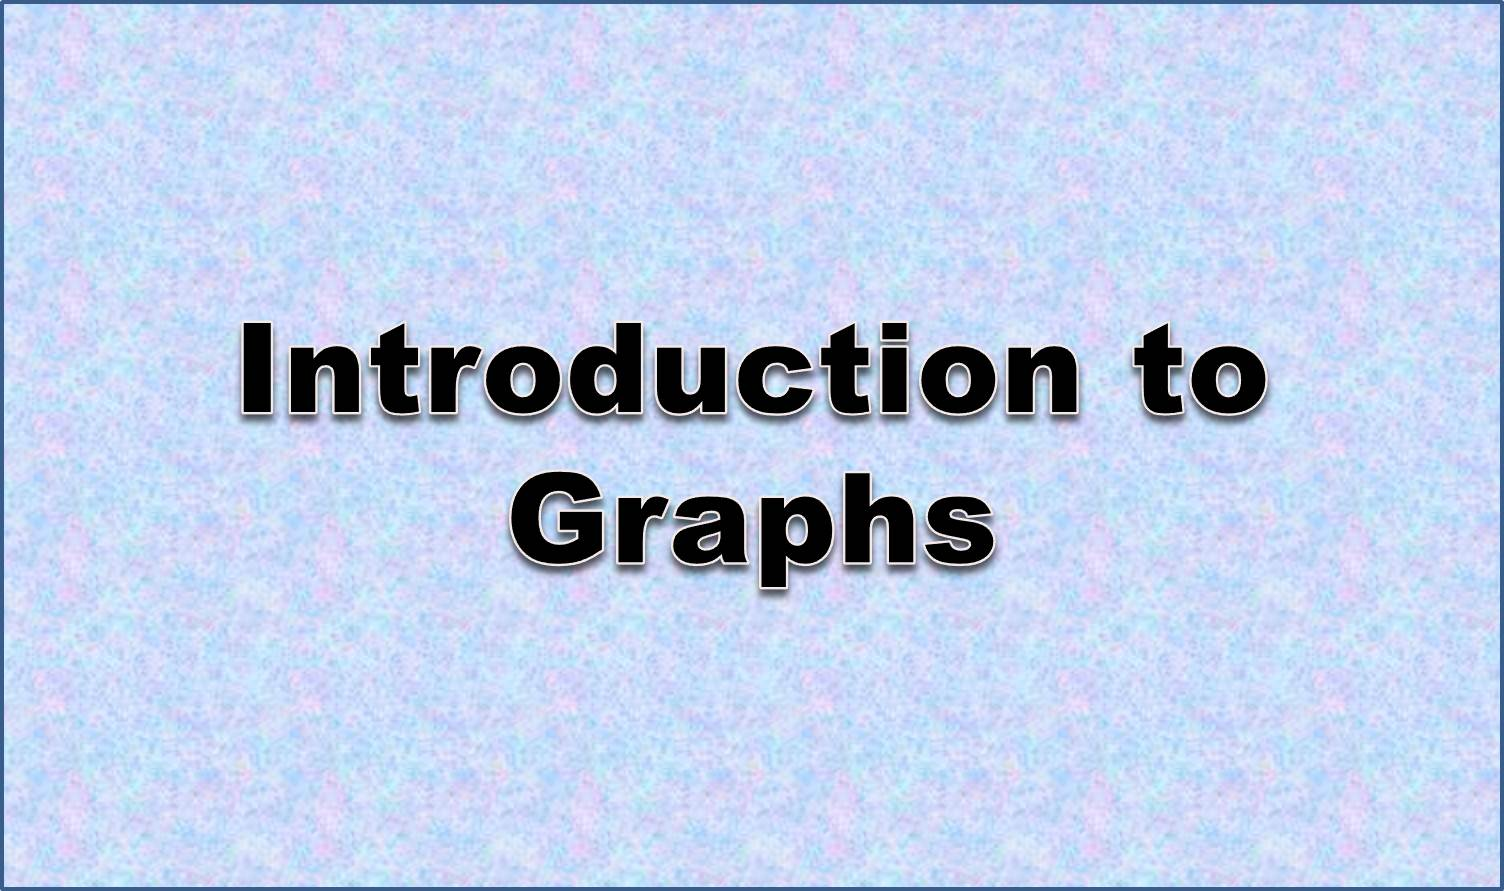 http://study.aisectonline.com/images/Linear graphs word problems.jpg